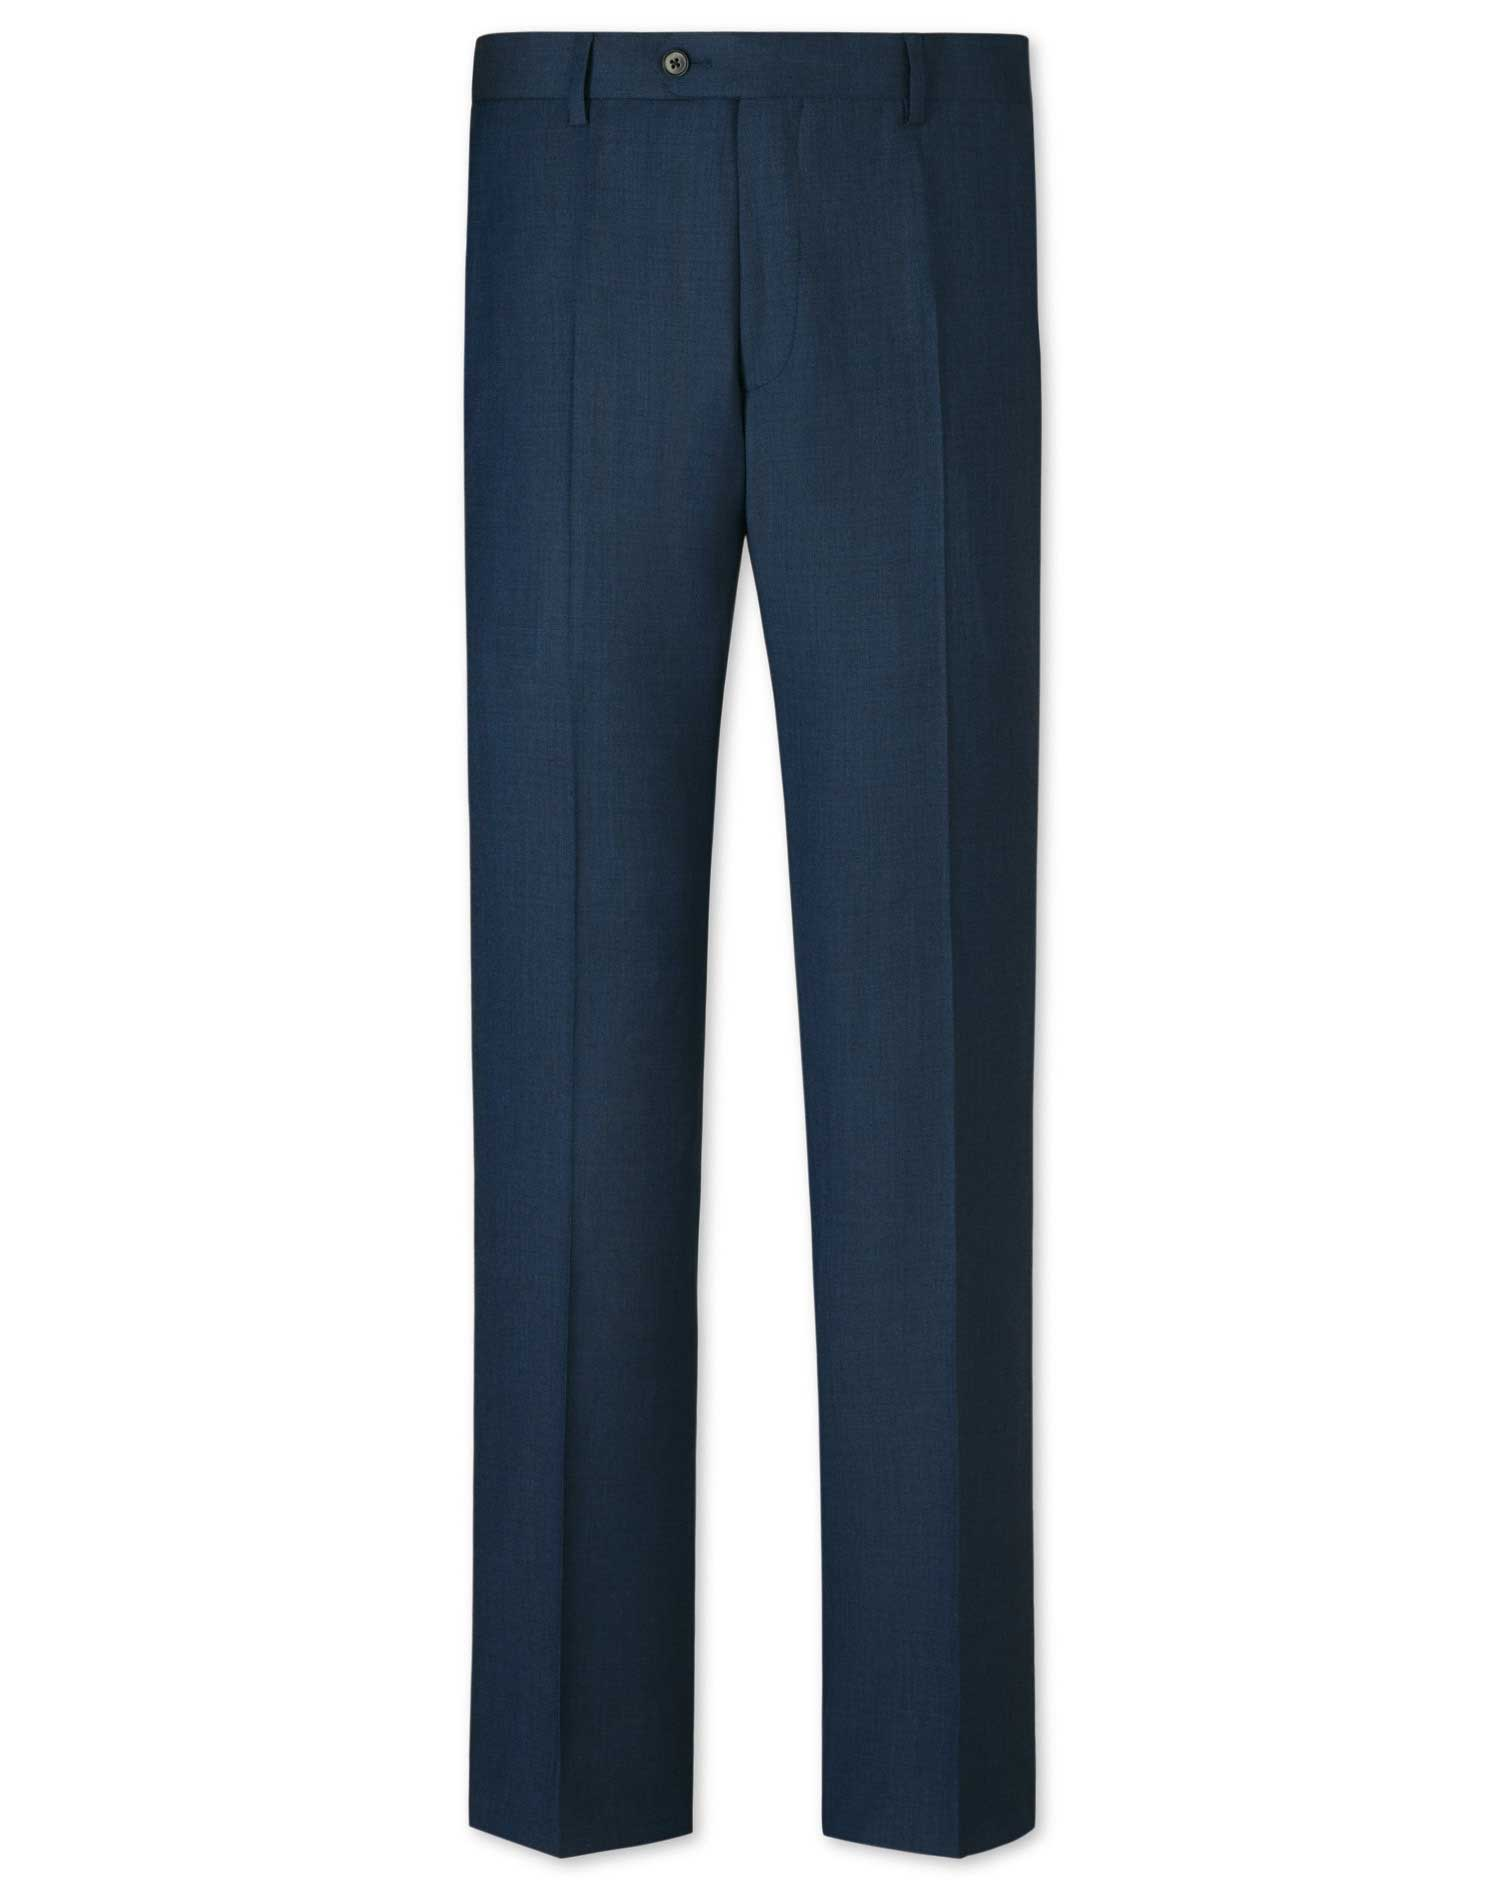 Ink Classic Fit Sharkskin Business Suit Trousers Size W32 L32 by Charles Tyrwhitt